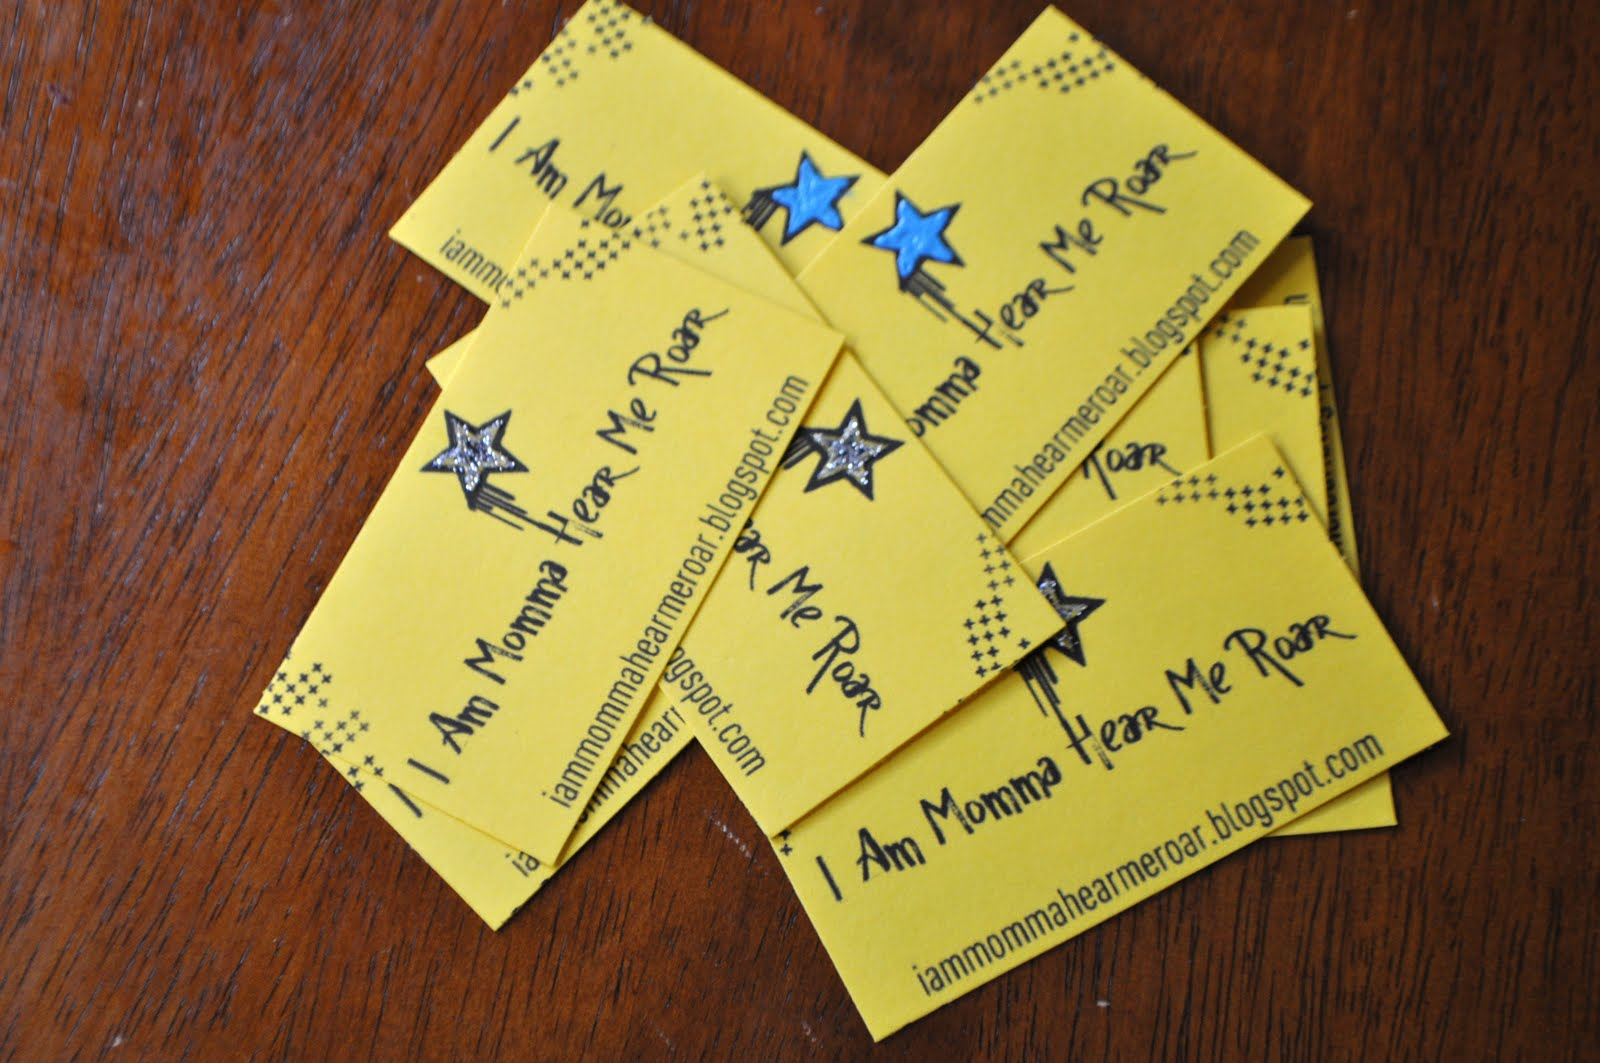 I am momma hear me roar diy business cards they were fun and easy to make they still have a professional look and a pop of color but without paying for it reheart